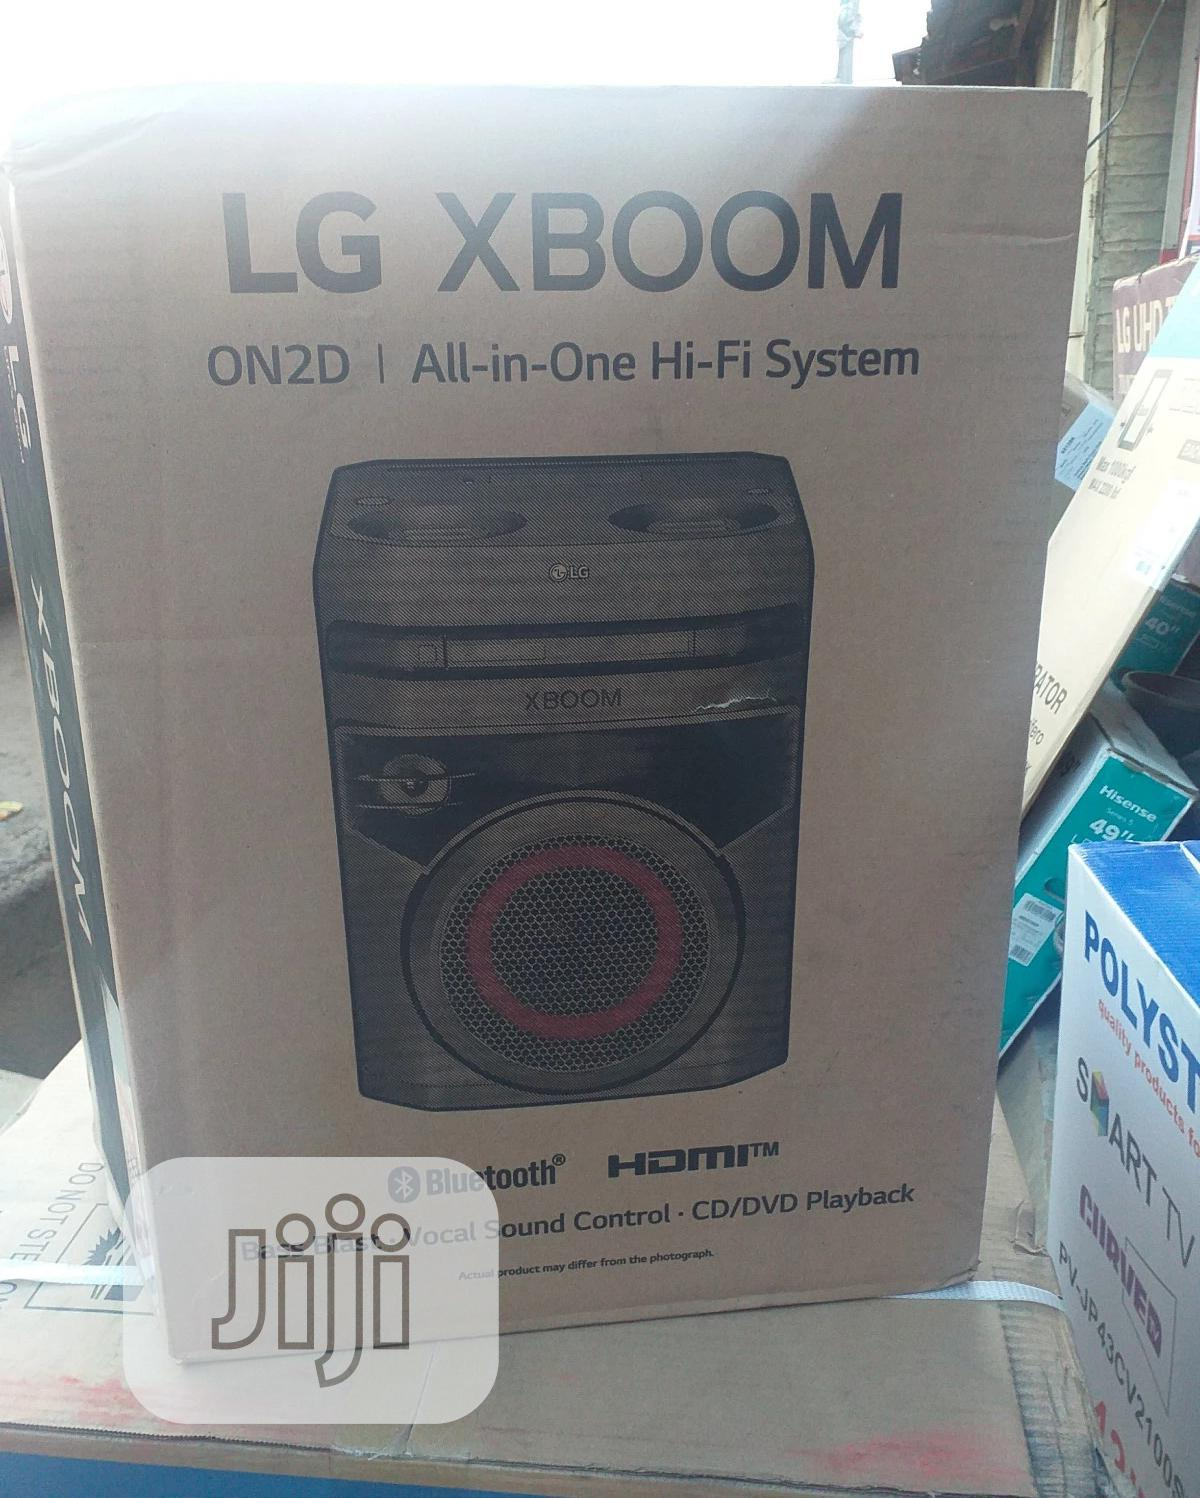 LG Xboom On2d ( All -in-one Hi-fi System)